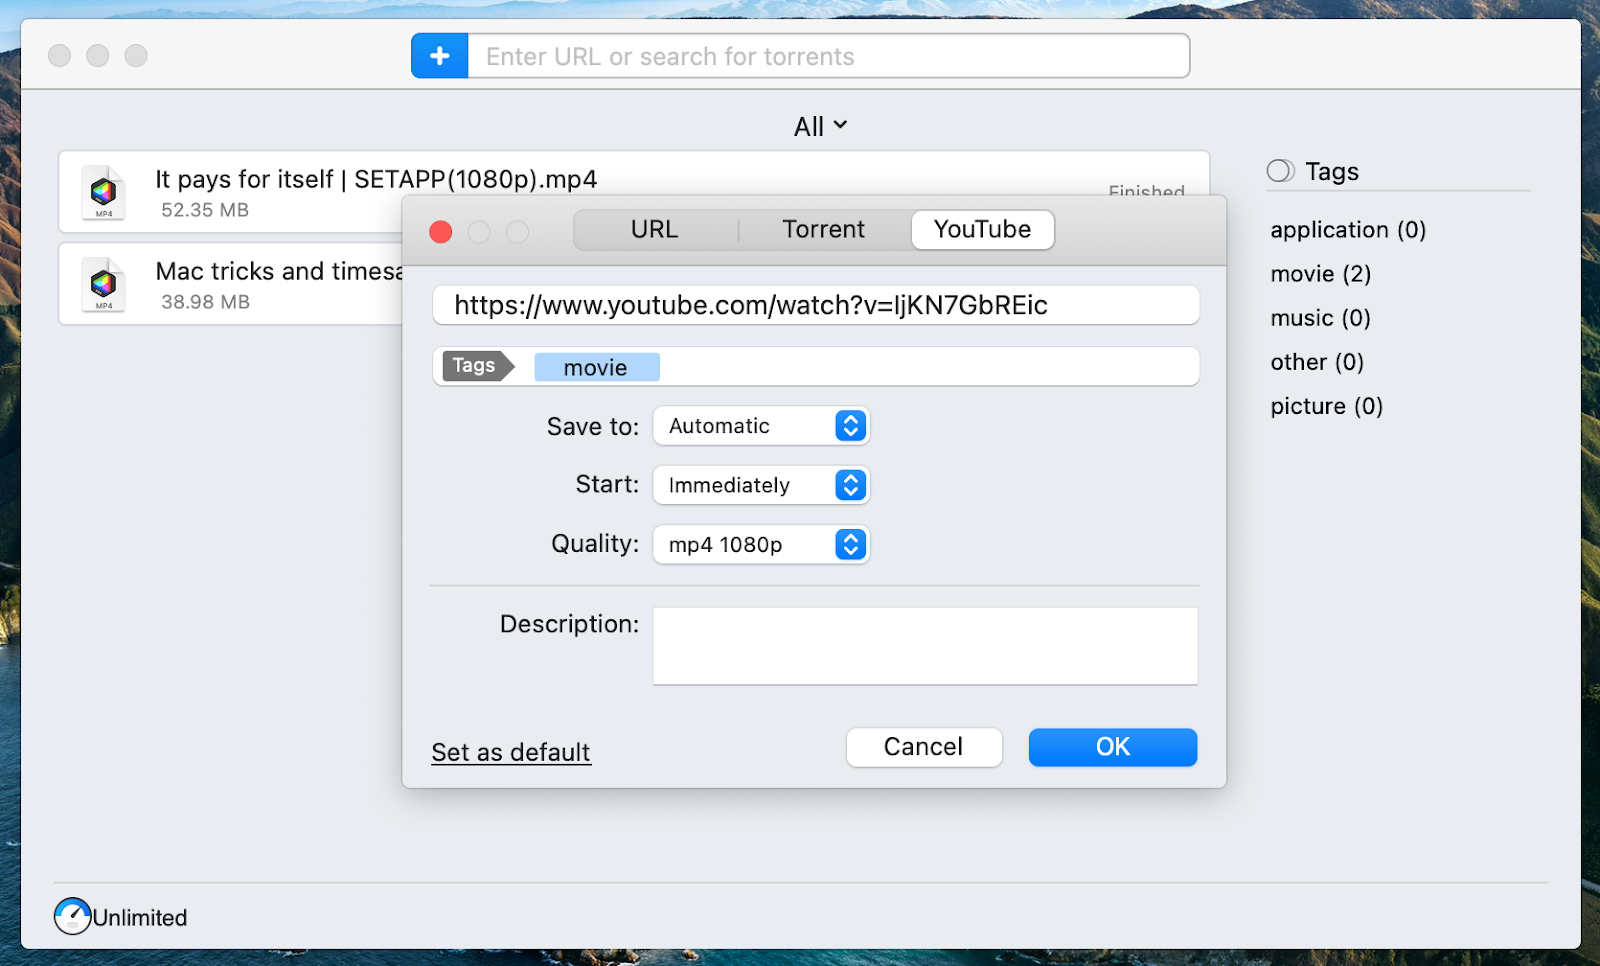 Save videos from YouTube to watch them offline